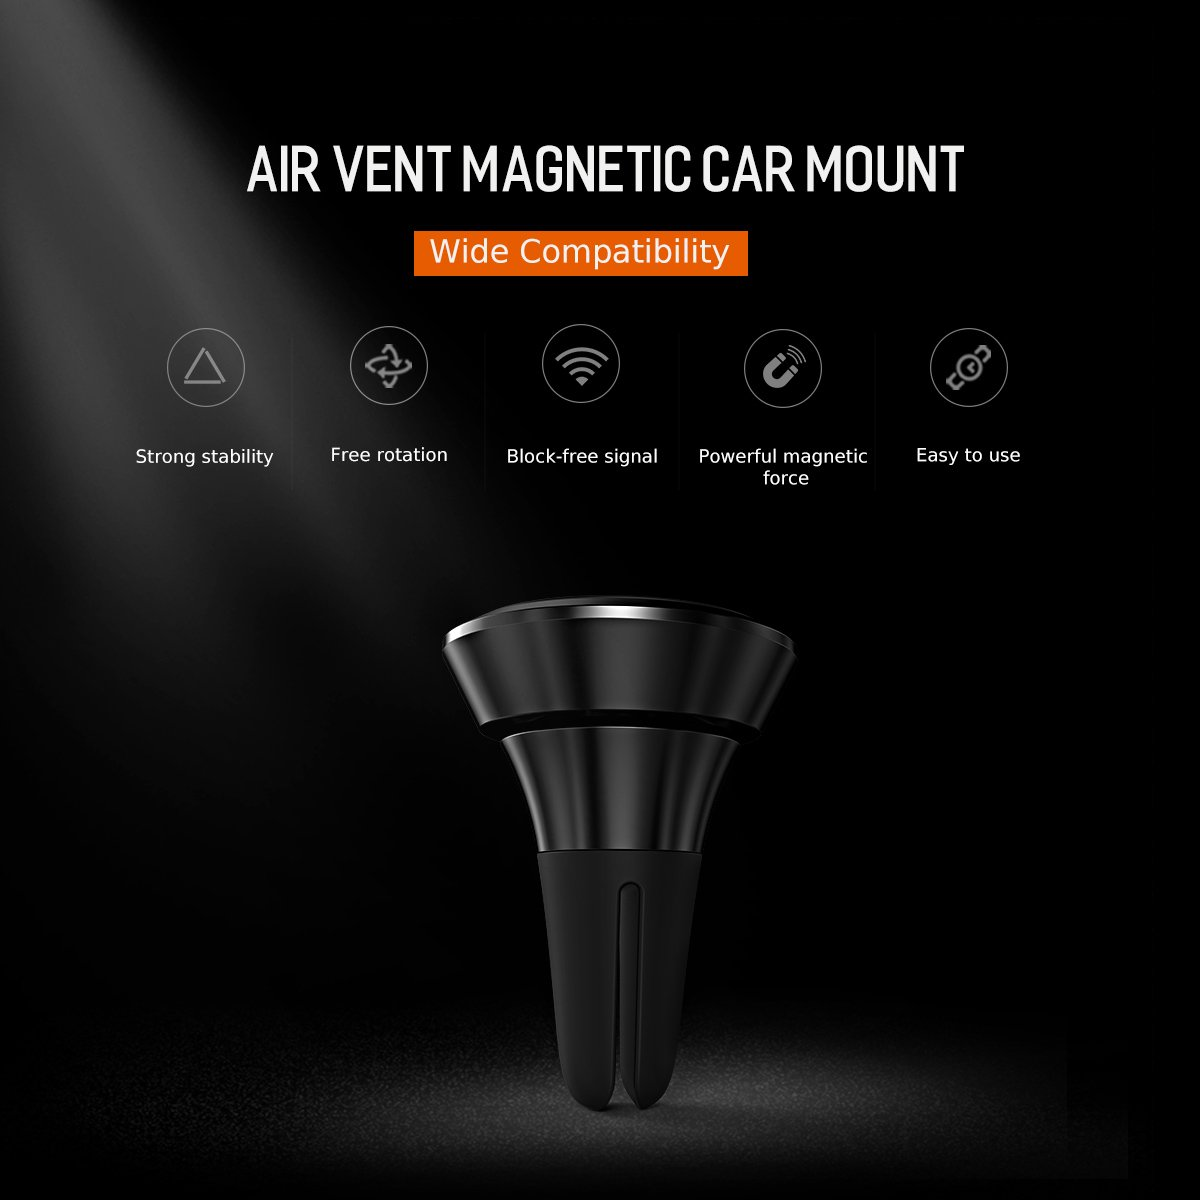 Samsung Galaxy S6//S7//S8//S9//Plus /& All Smartphones /& Mini Tablets ROCK SPACE Mini Super Strong Magnet Elegant Luxury Design for iPhone X,8//7//6//6s Plus Magnetic Phone Holder for Car Air Vent